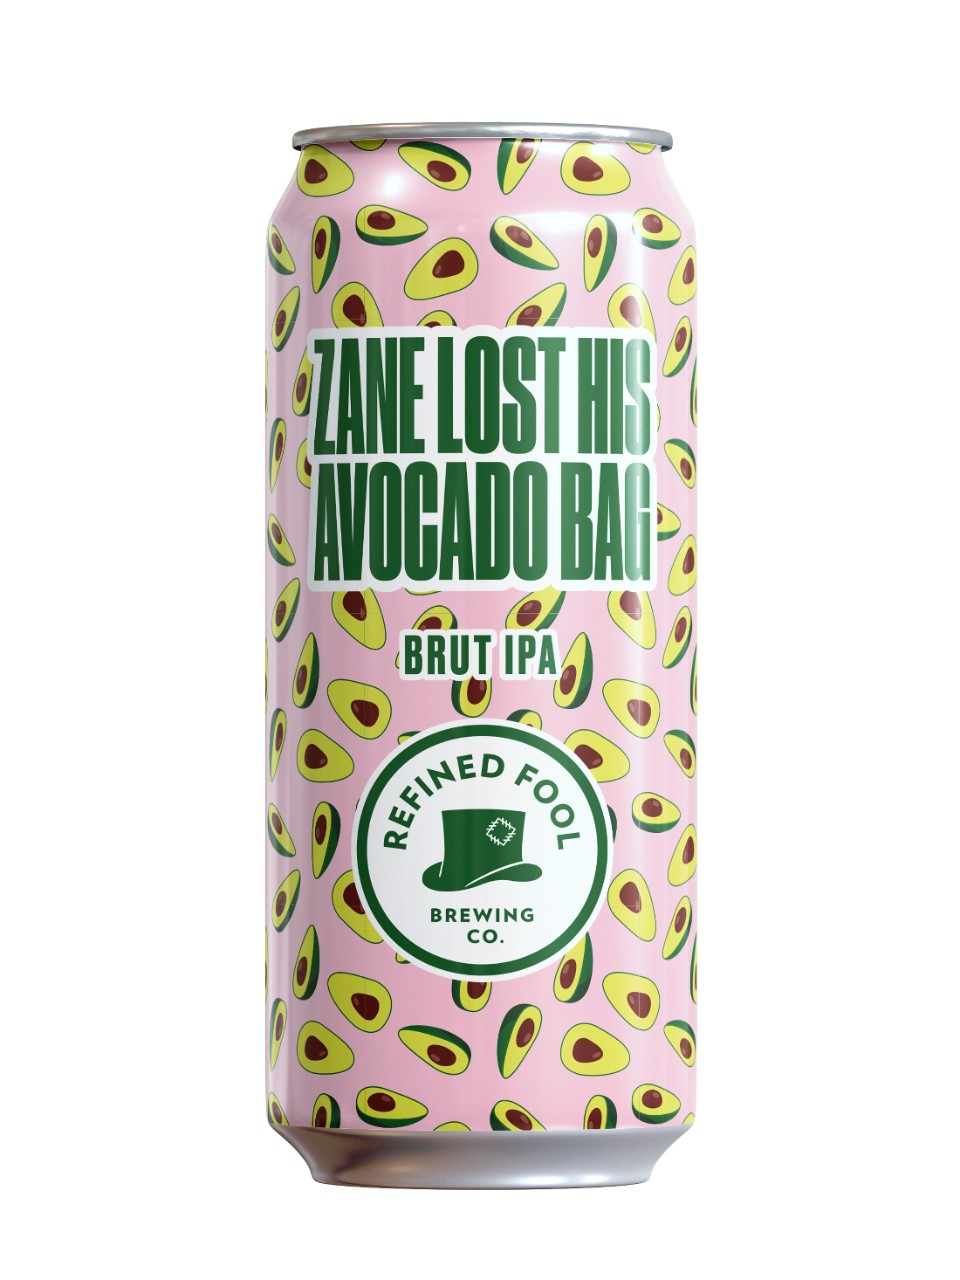 Refined Fool, Zane Lost His Avocado Bag, Brut IPA from LCBO